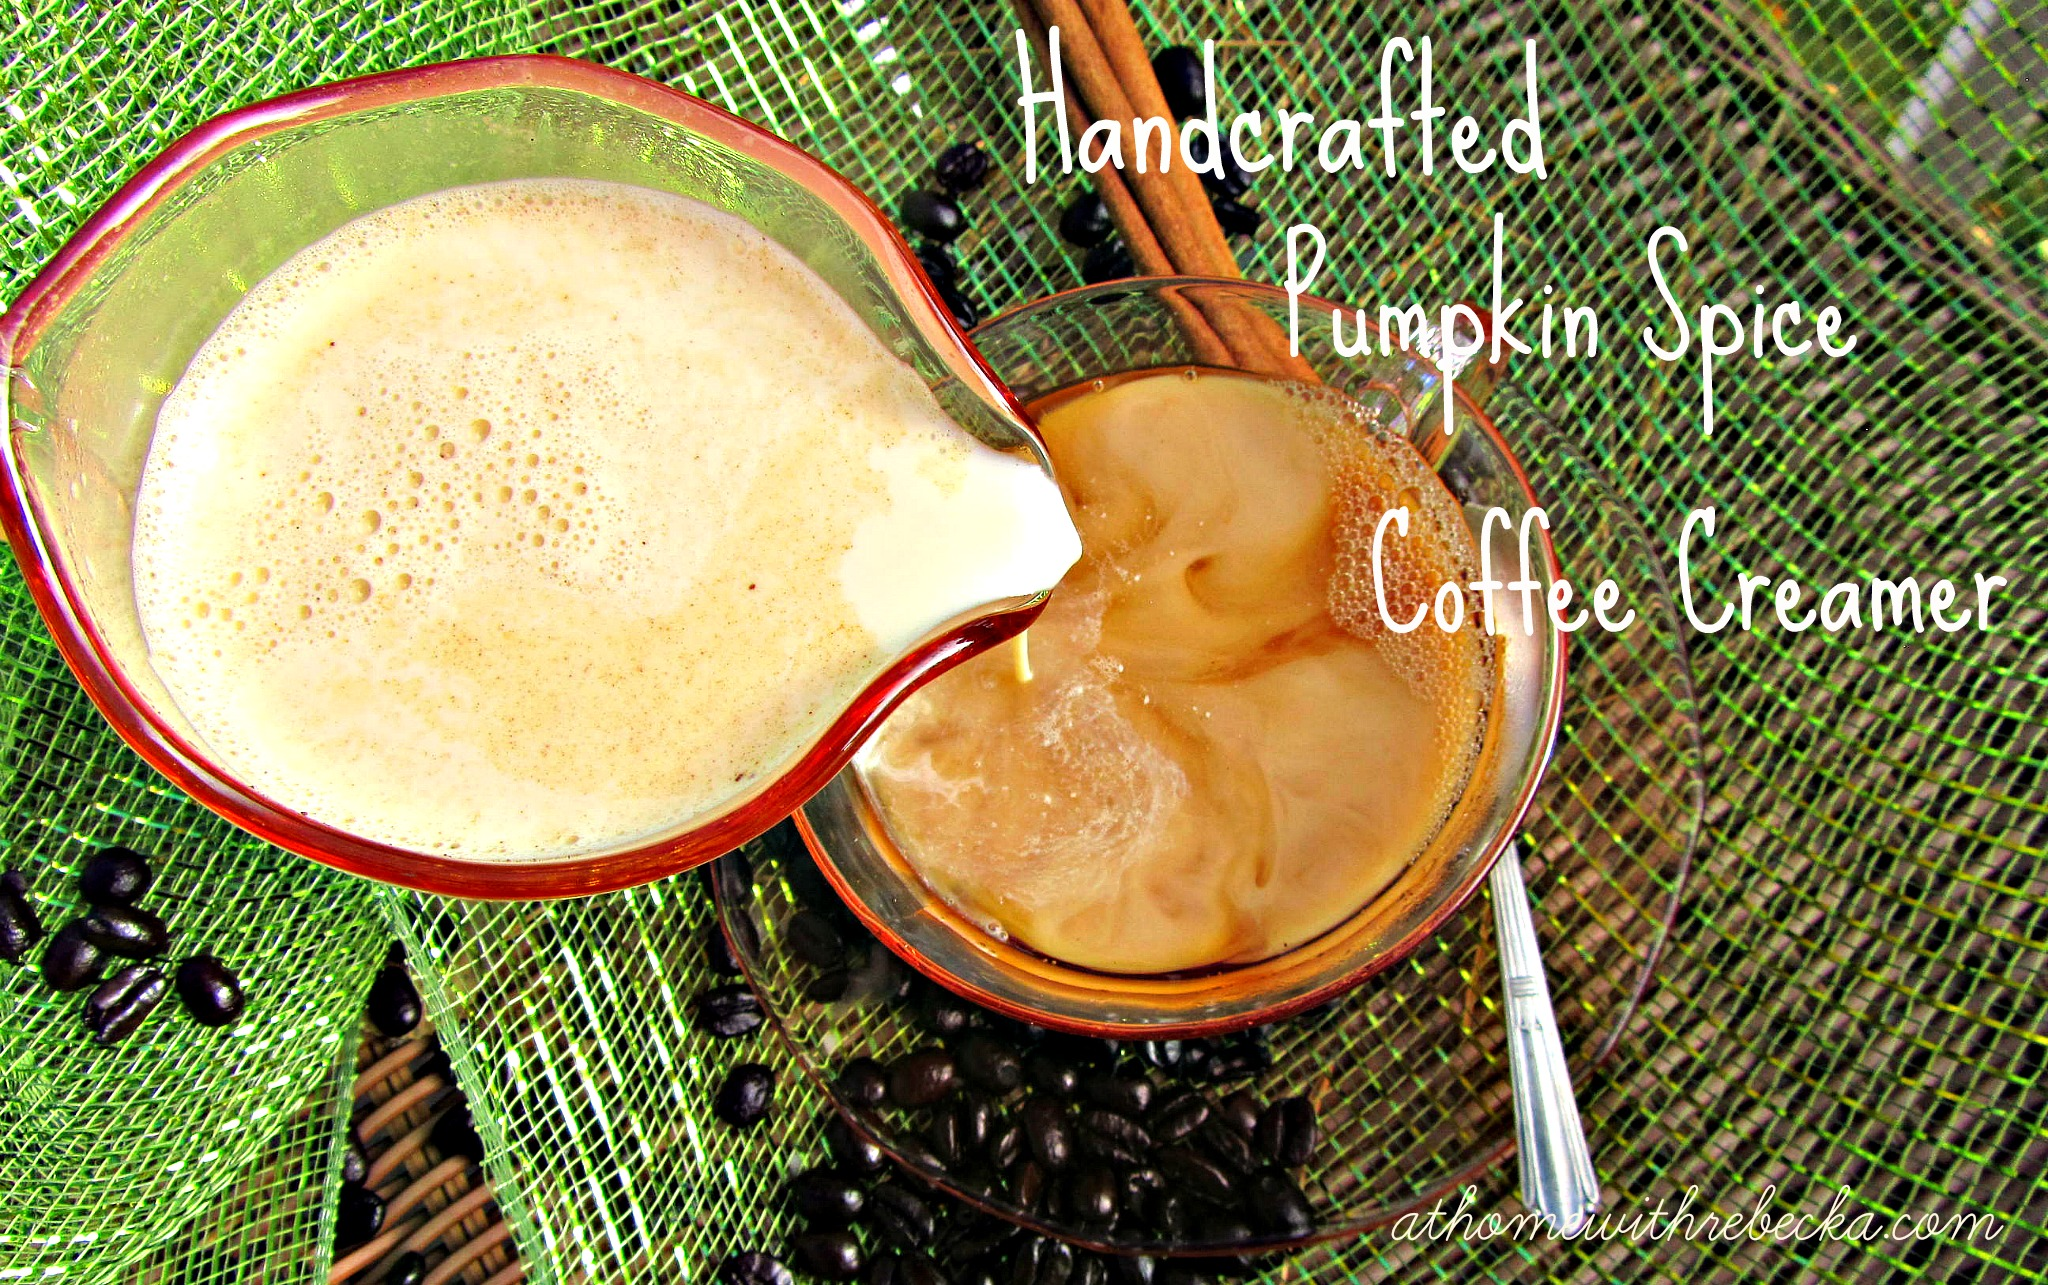 Handcrafted Pumpkin Spice Coffee Creamer